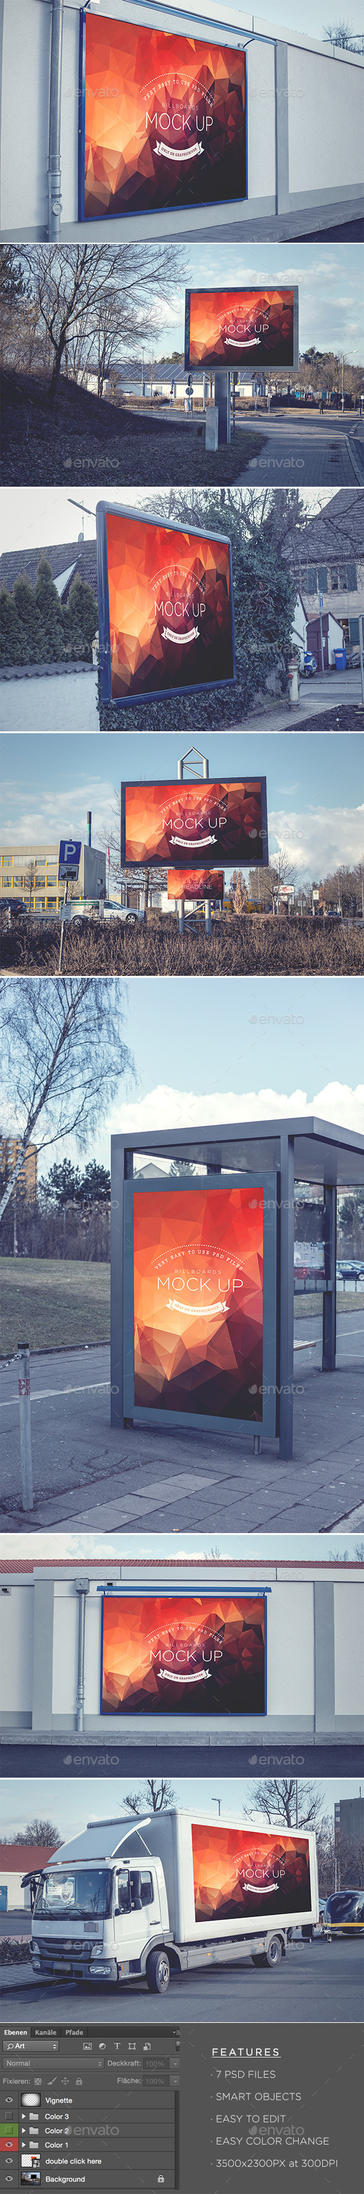 Billboards - Realistic Mock Up by DOMDESIGN